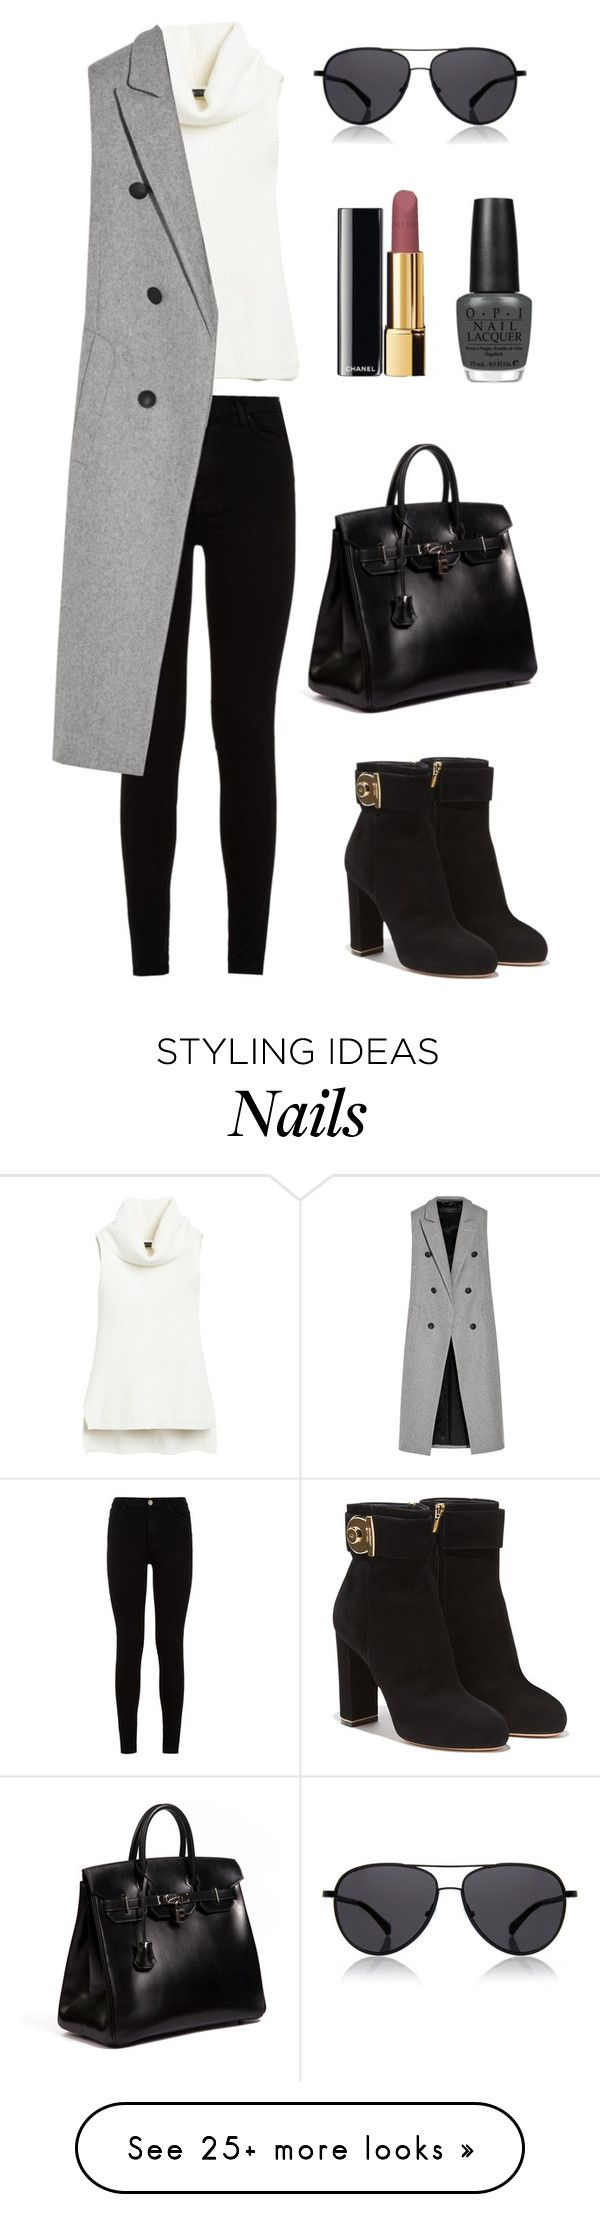 """""""simple #6"""" by vandaarh114 on Polyvore featuring White House Black Market, 7 For All Mankind, rag & bone, Salvatore Ferragamo, Hermès, The Row, Chanel and OPI"""